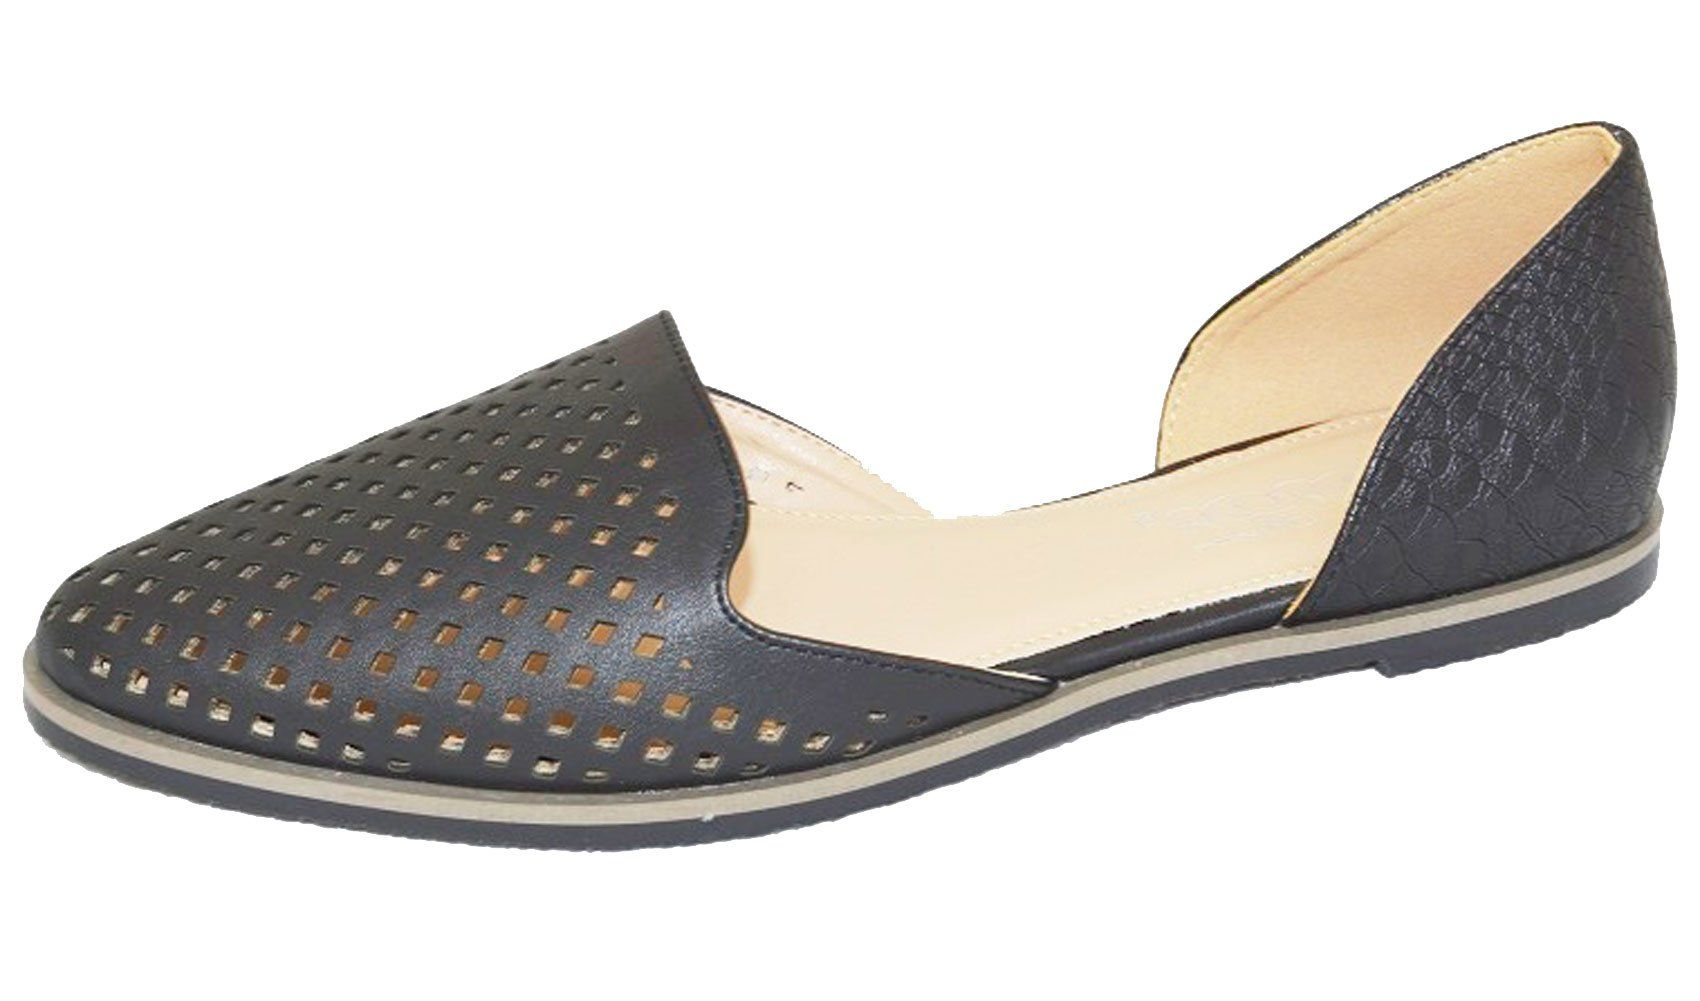 DBDK by Elegant Footwear Women's Beatrice-1 D'Orsay Flats (7.5 B(M) US, Black). Laser Cut Detailing Across Foot. D'Orsay Style. Easy Slip on Design & Pointed Toe. Faux Snake Pattern Detail on Heel. Imported.